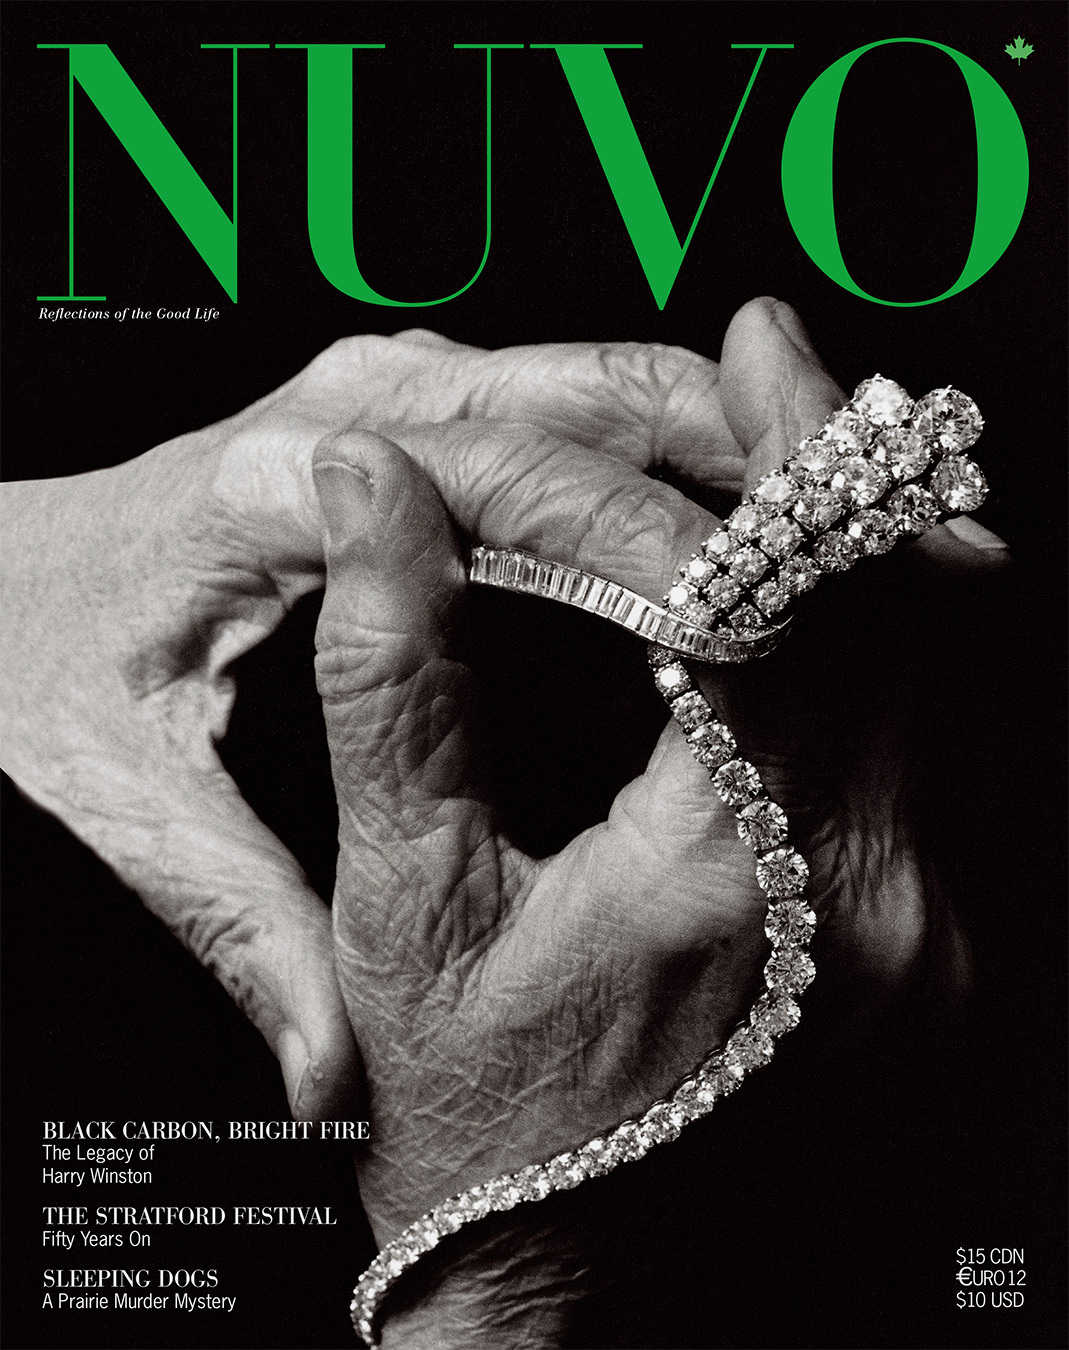 NUVO Magazine Spring 2002 Cover featuring Harry Winston